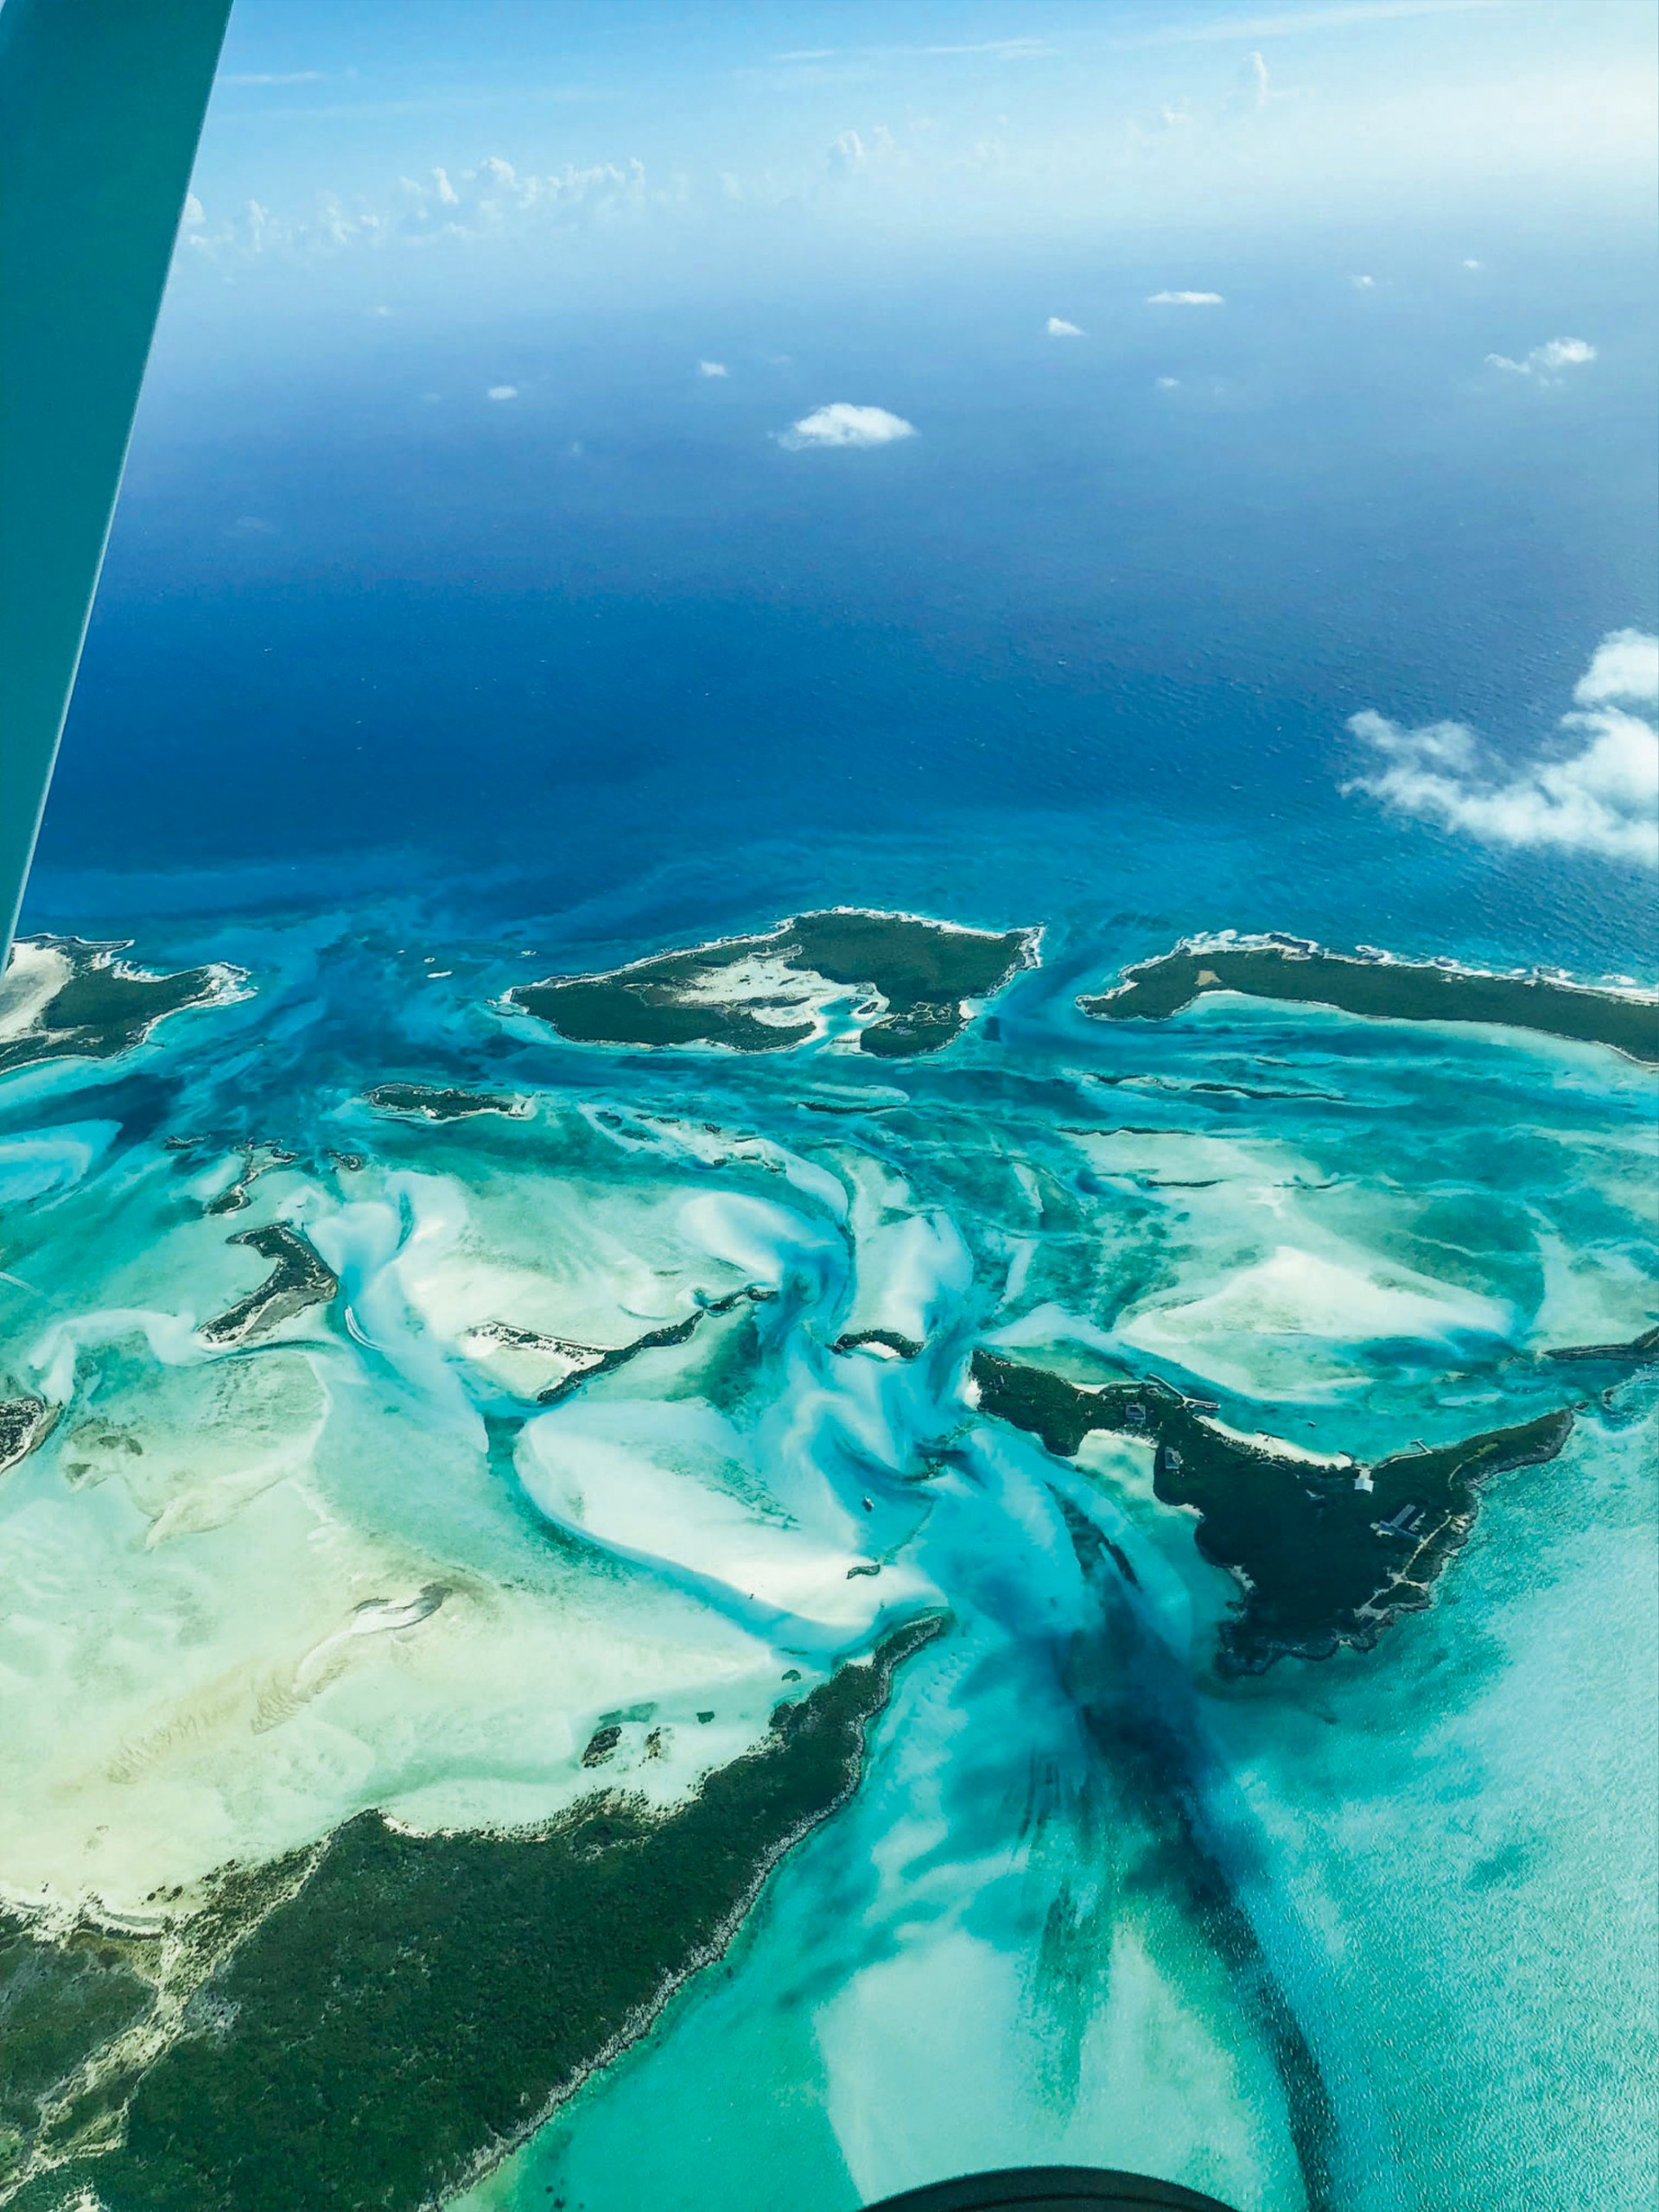 Ariel view of Bahamas islands